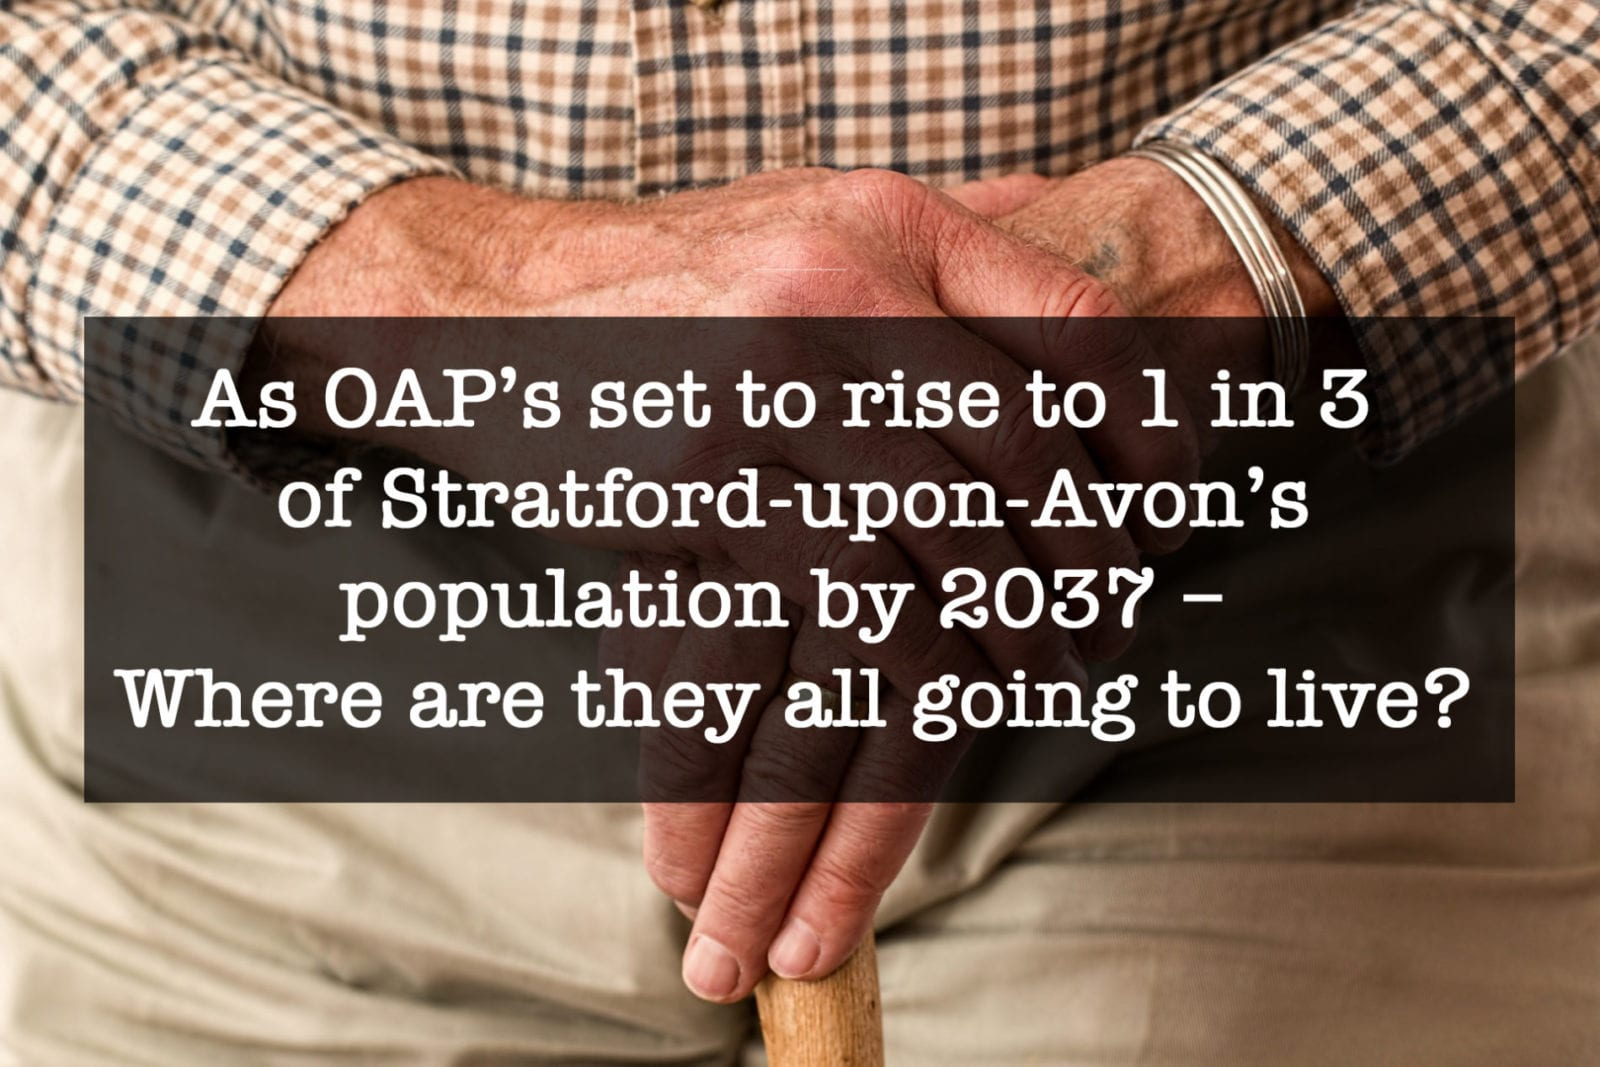 As OAP's set to rise to 1 in 3 of Stratford-upon-Avon's population by 2037 – Where are they all going to live?